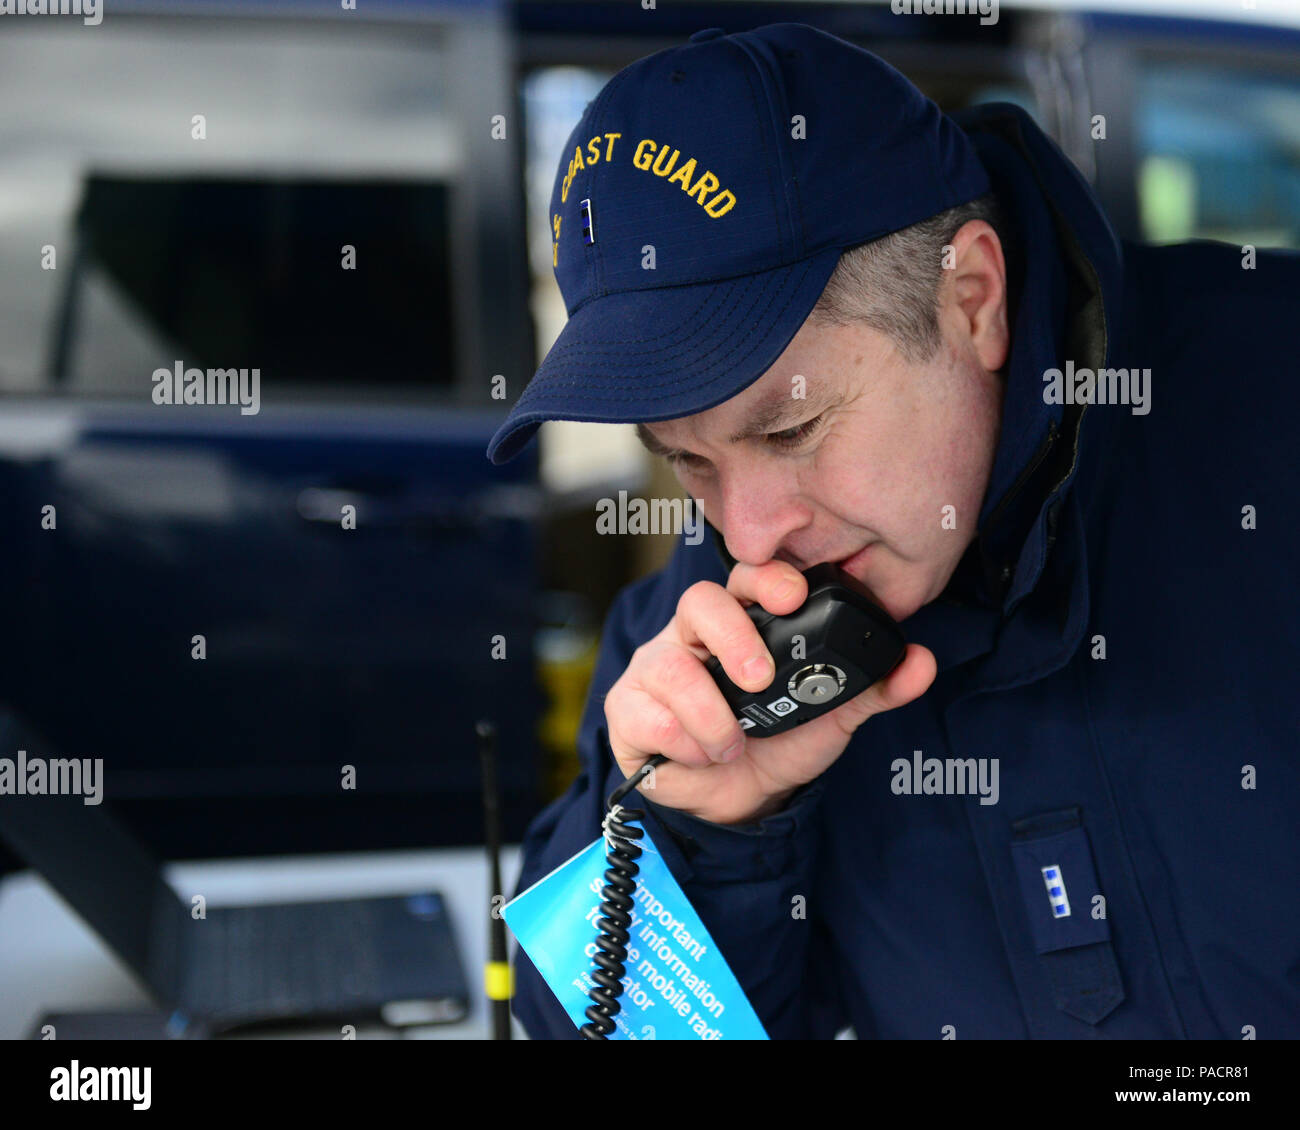 Chief Warrant Officer Michael Wood, a member of the Coast Guard 13th District response technology division, uses a mobile high frequency radio to communicate with the U.S. Customs and Border Protection National Law Enforcement Communications Service Center in Orlando, Fla., during a communications exercise at Coast Guard Base Seattle, March 22, 2016. The exercise simulated a communications blackout cased by a natural disaster. (U.S. Coast Guard photo by Petty Officer 1st Class George Degener) - Stock Image